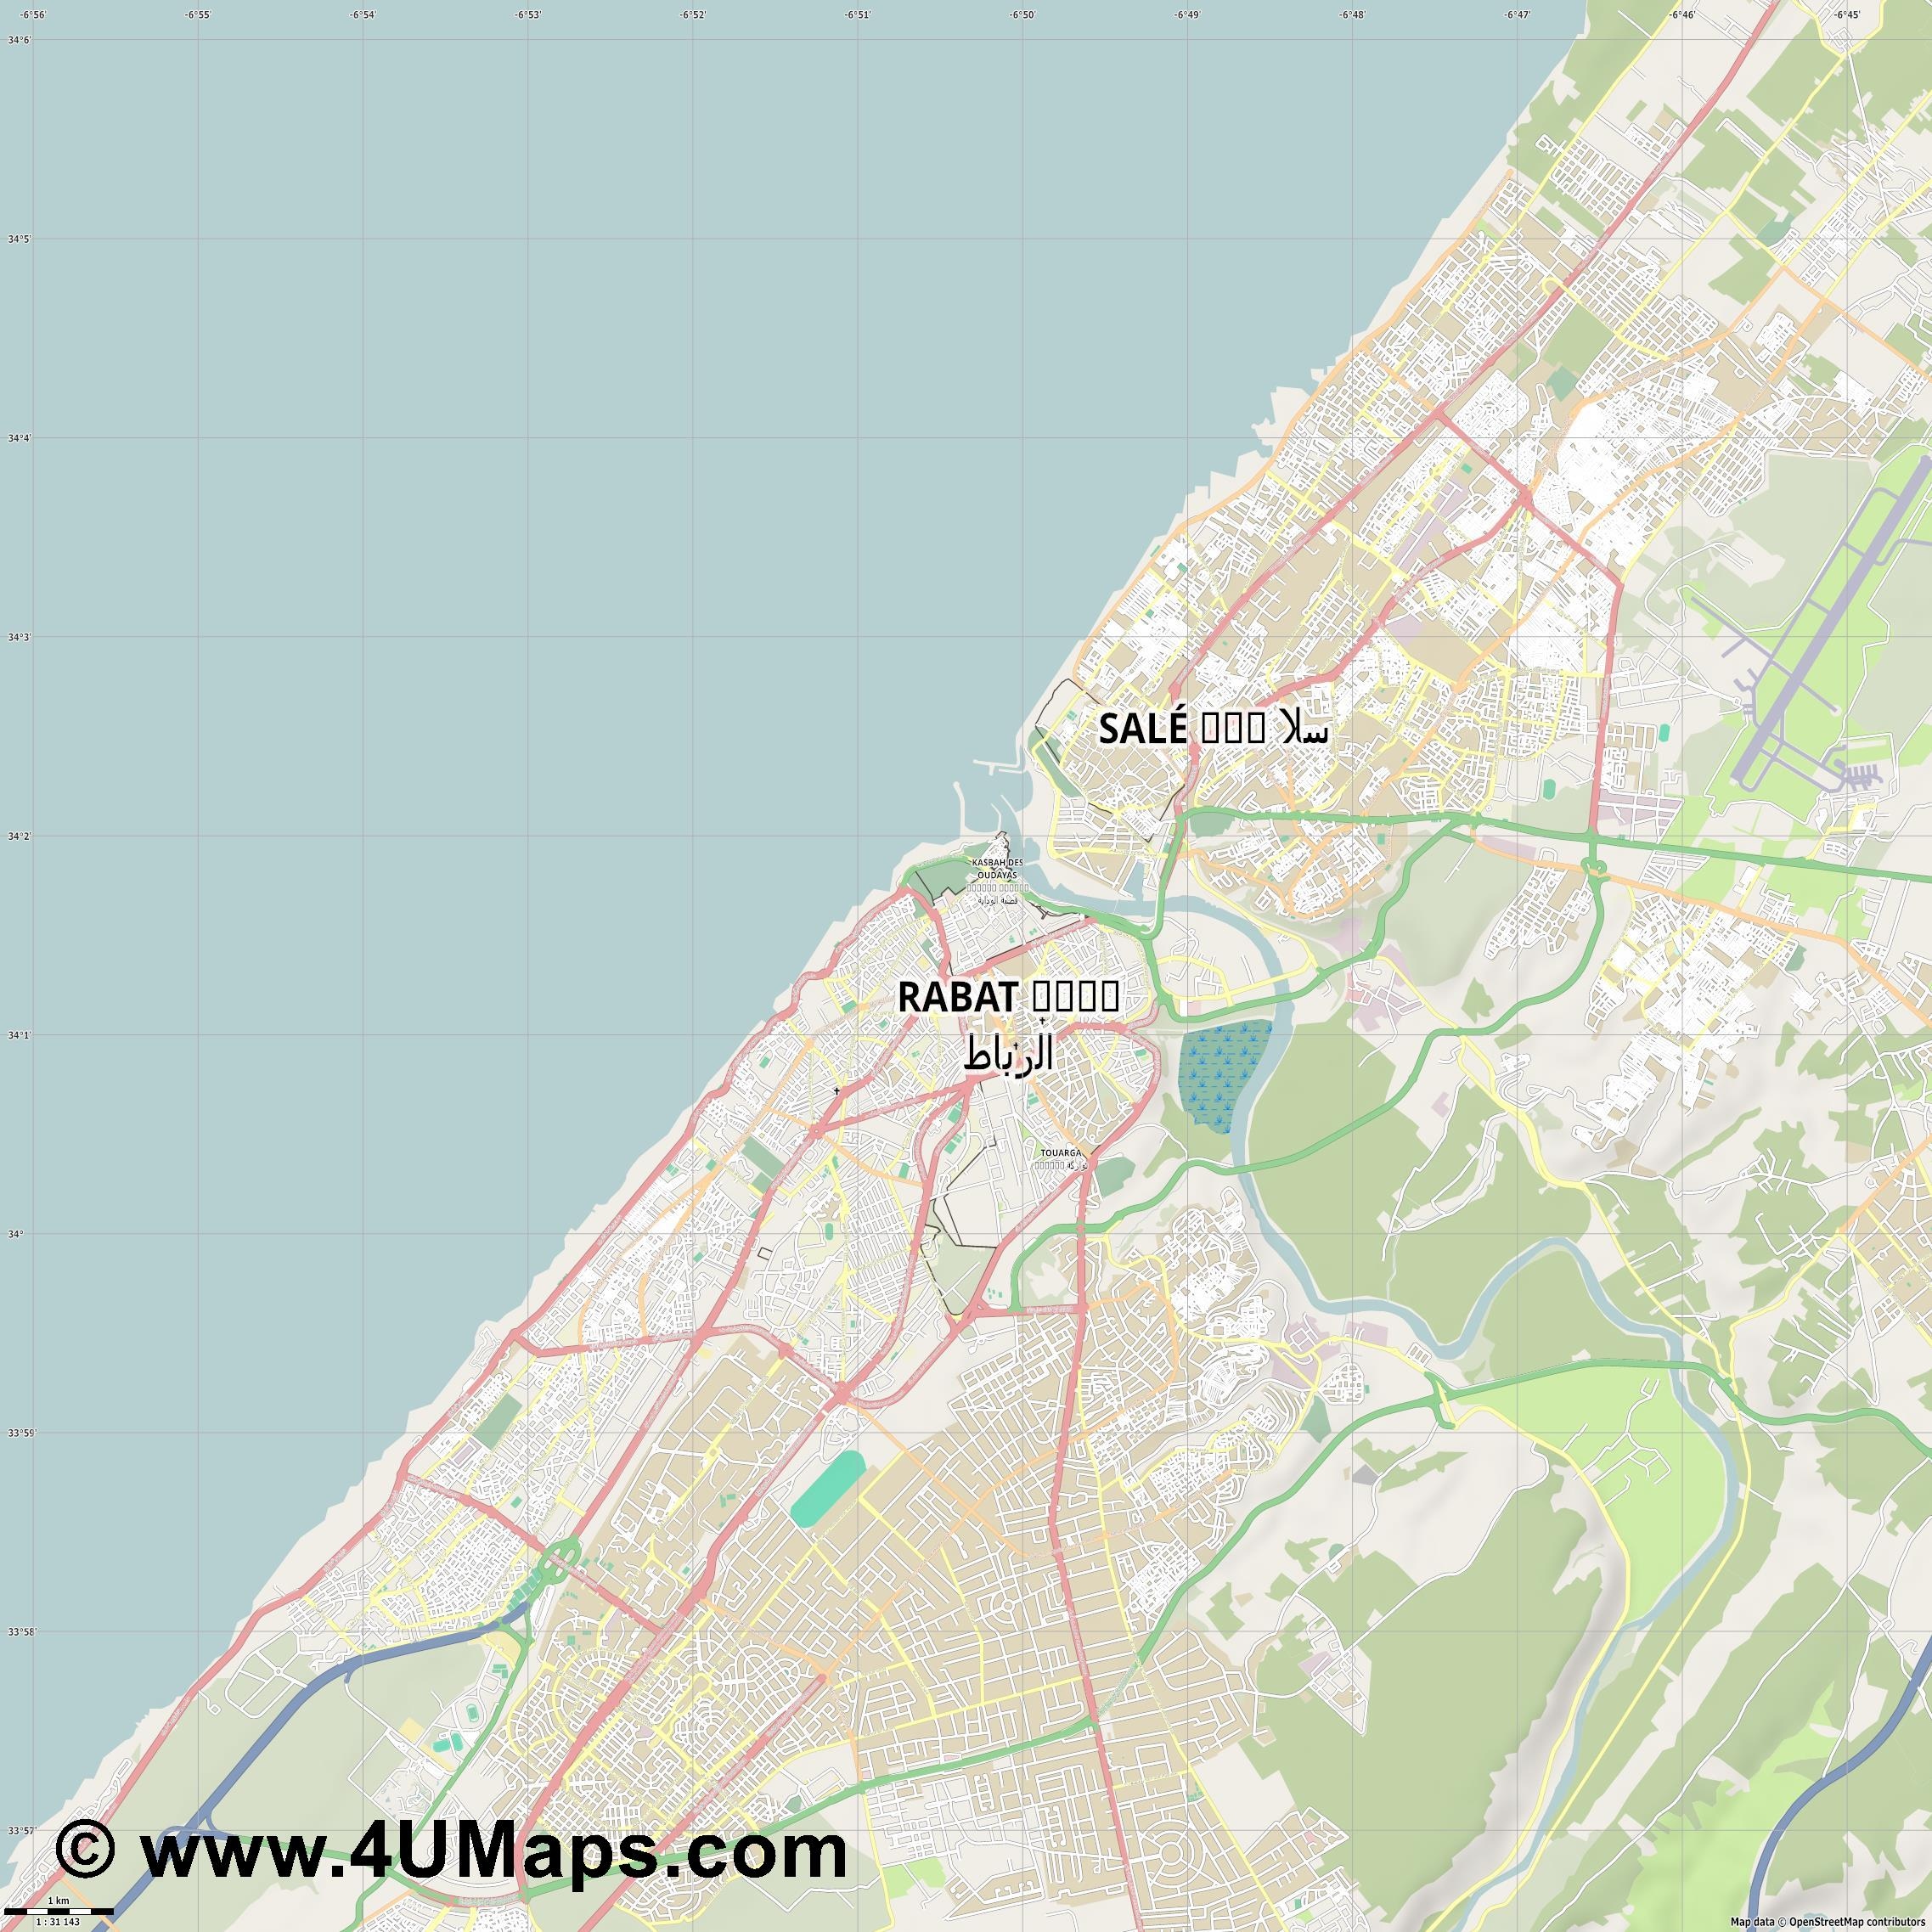 Rabat الرباط  jpg high detail, large area preview vector city map